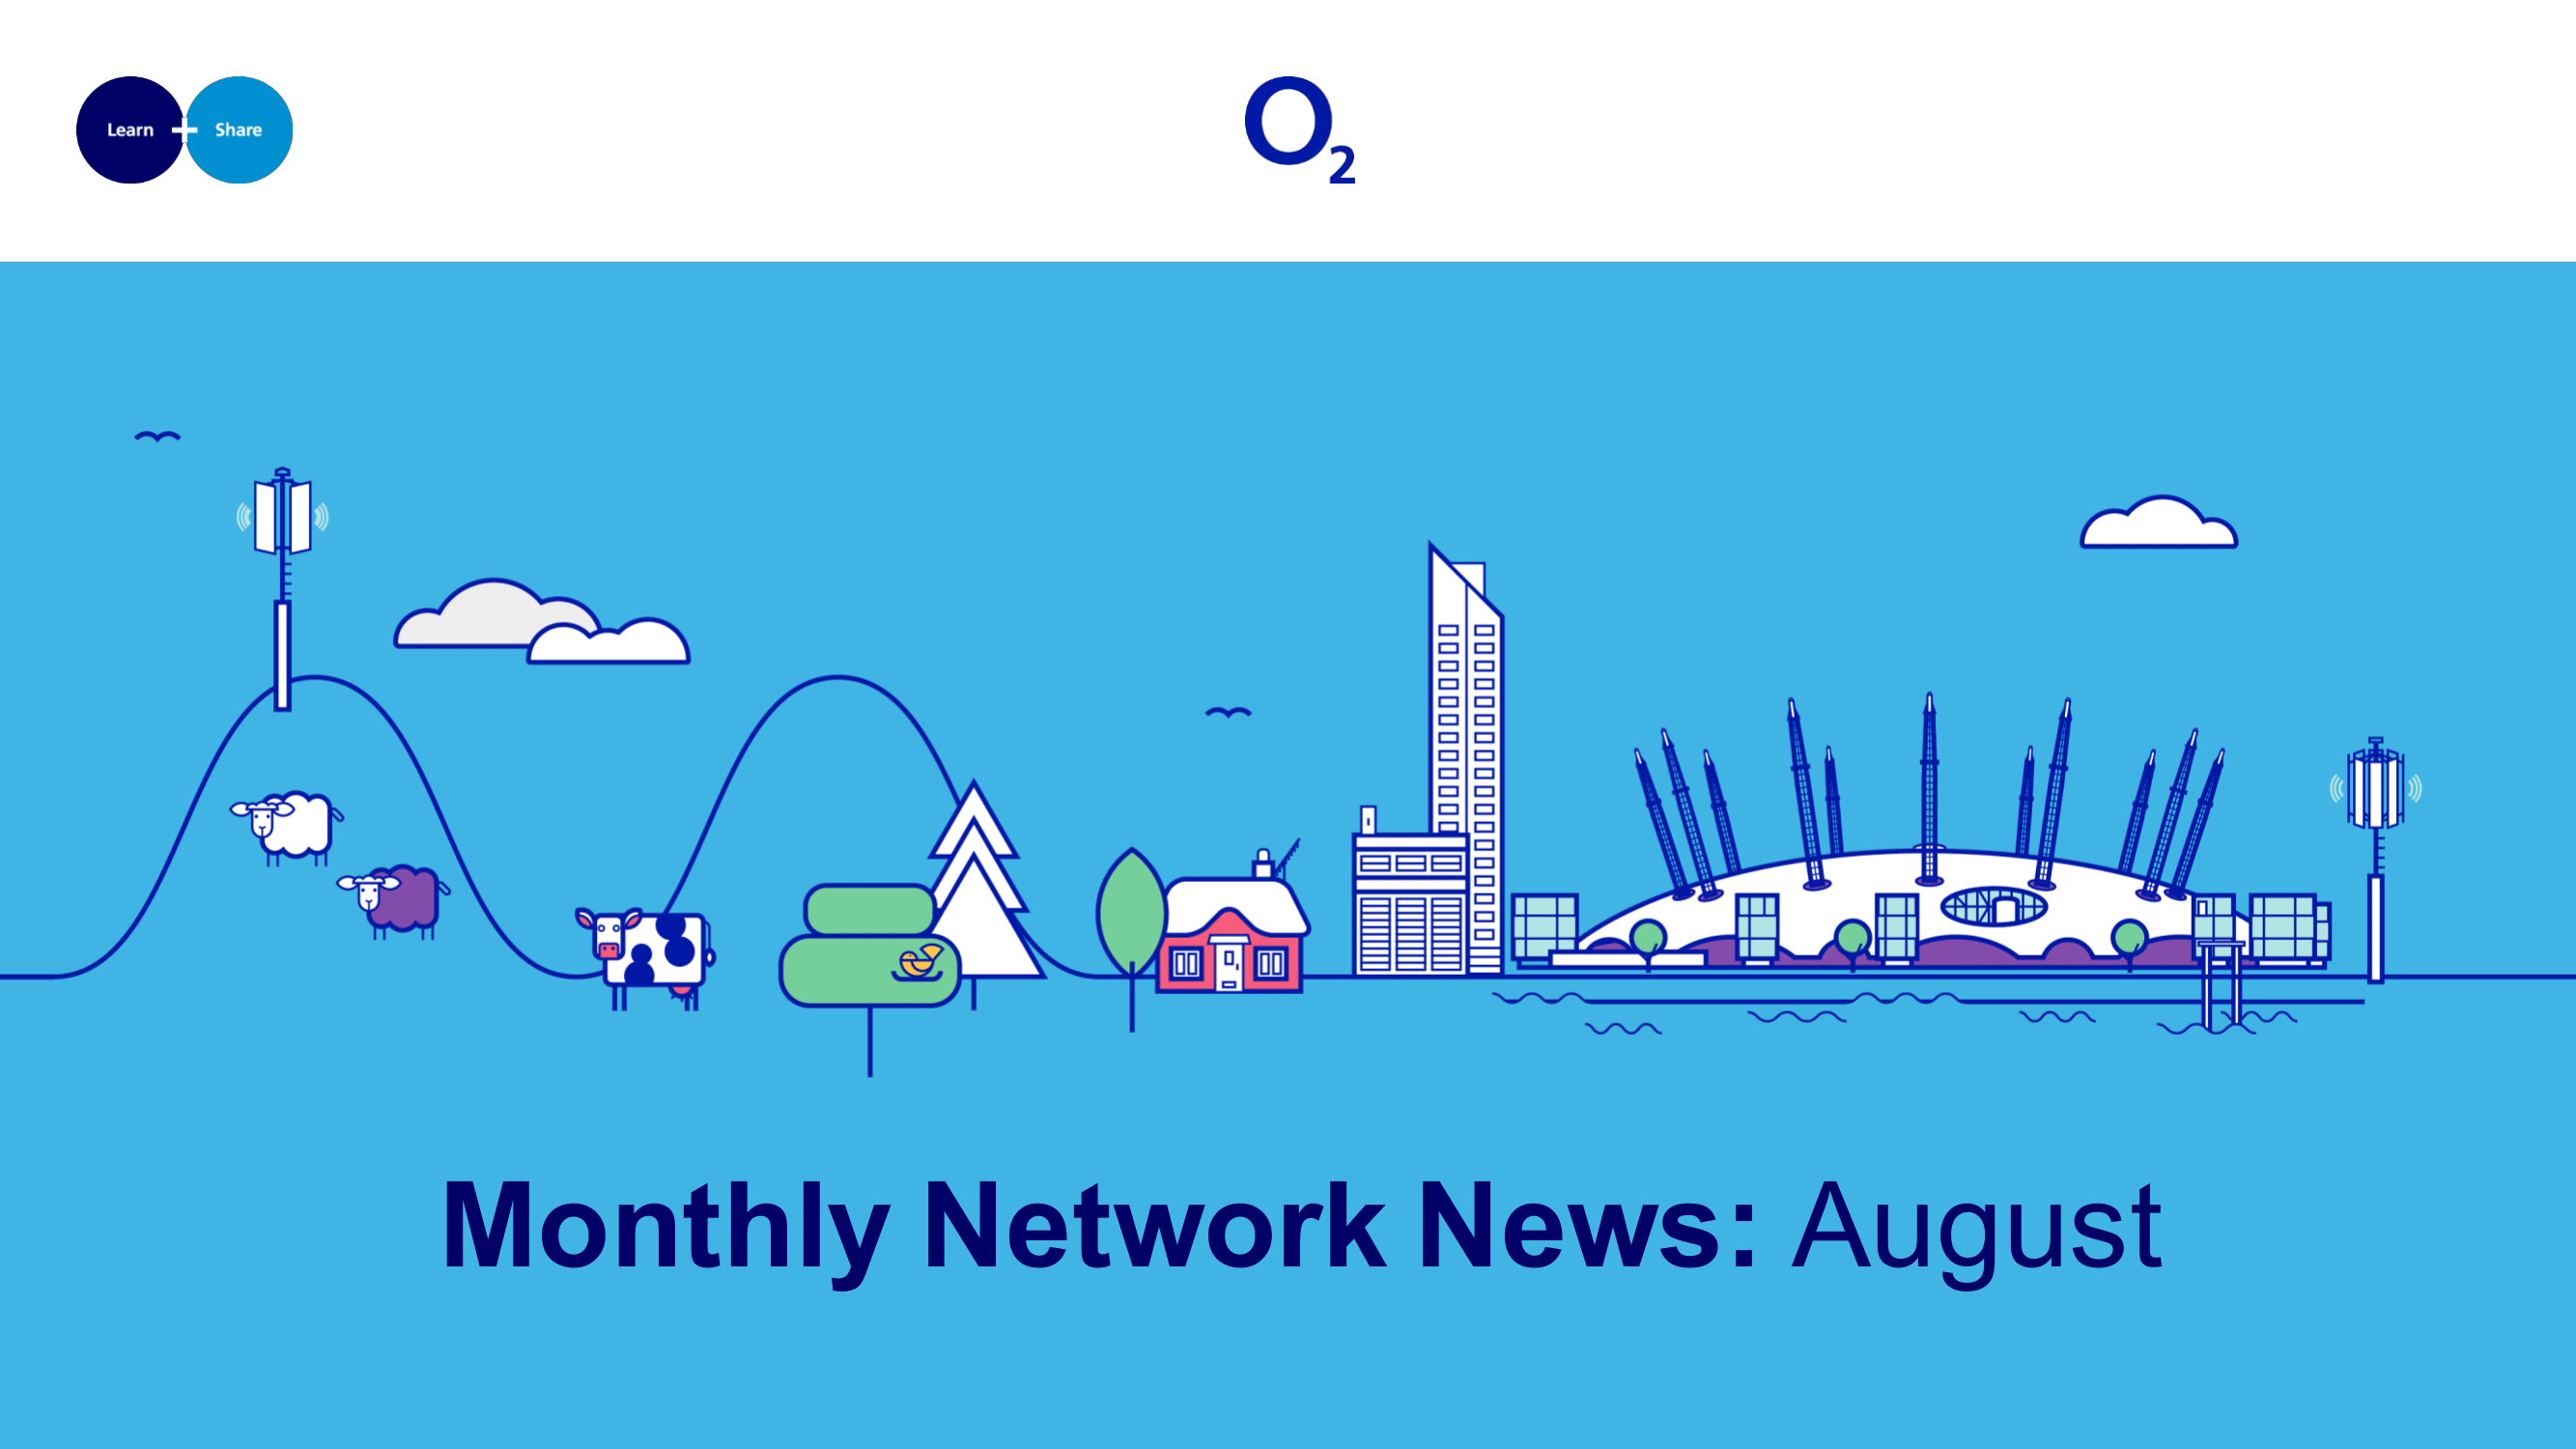 Monthly Network News August 20-1.png